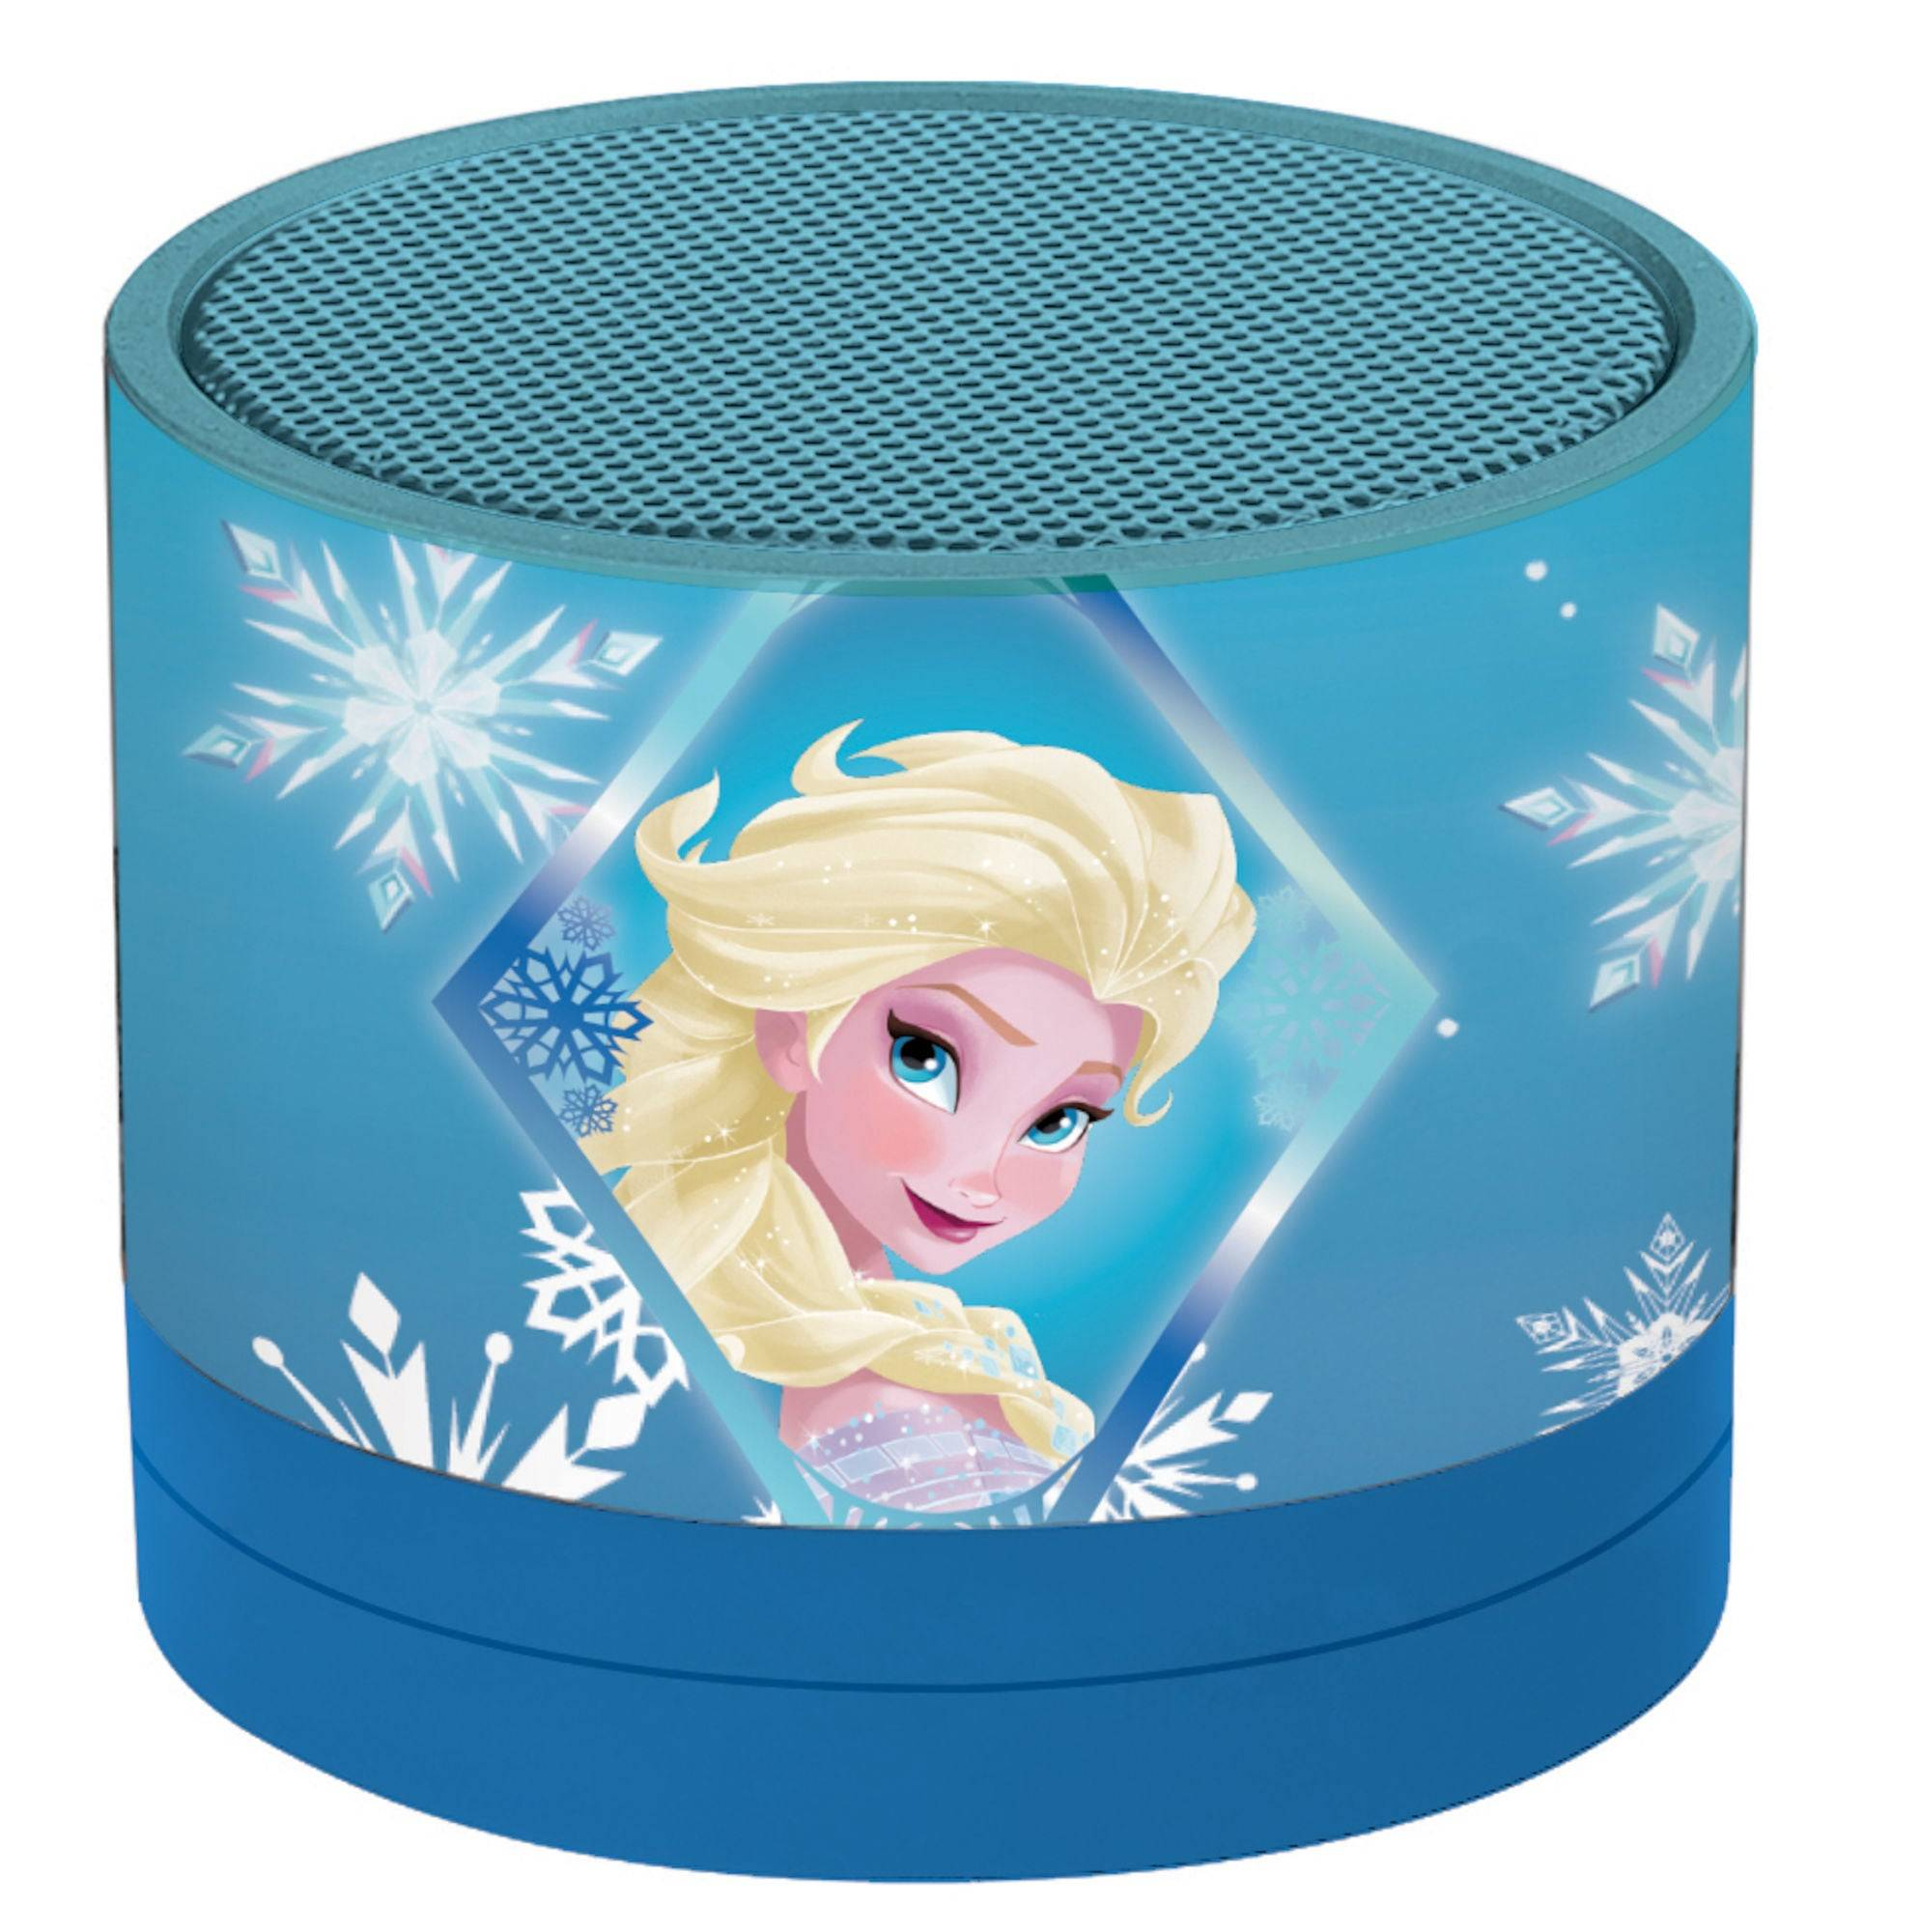 Disney Frozen Høytaler Bluetooth, Blå